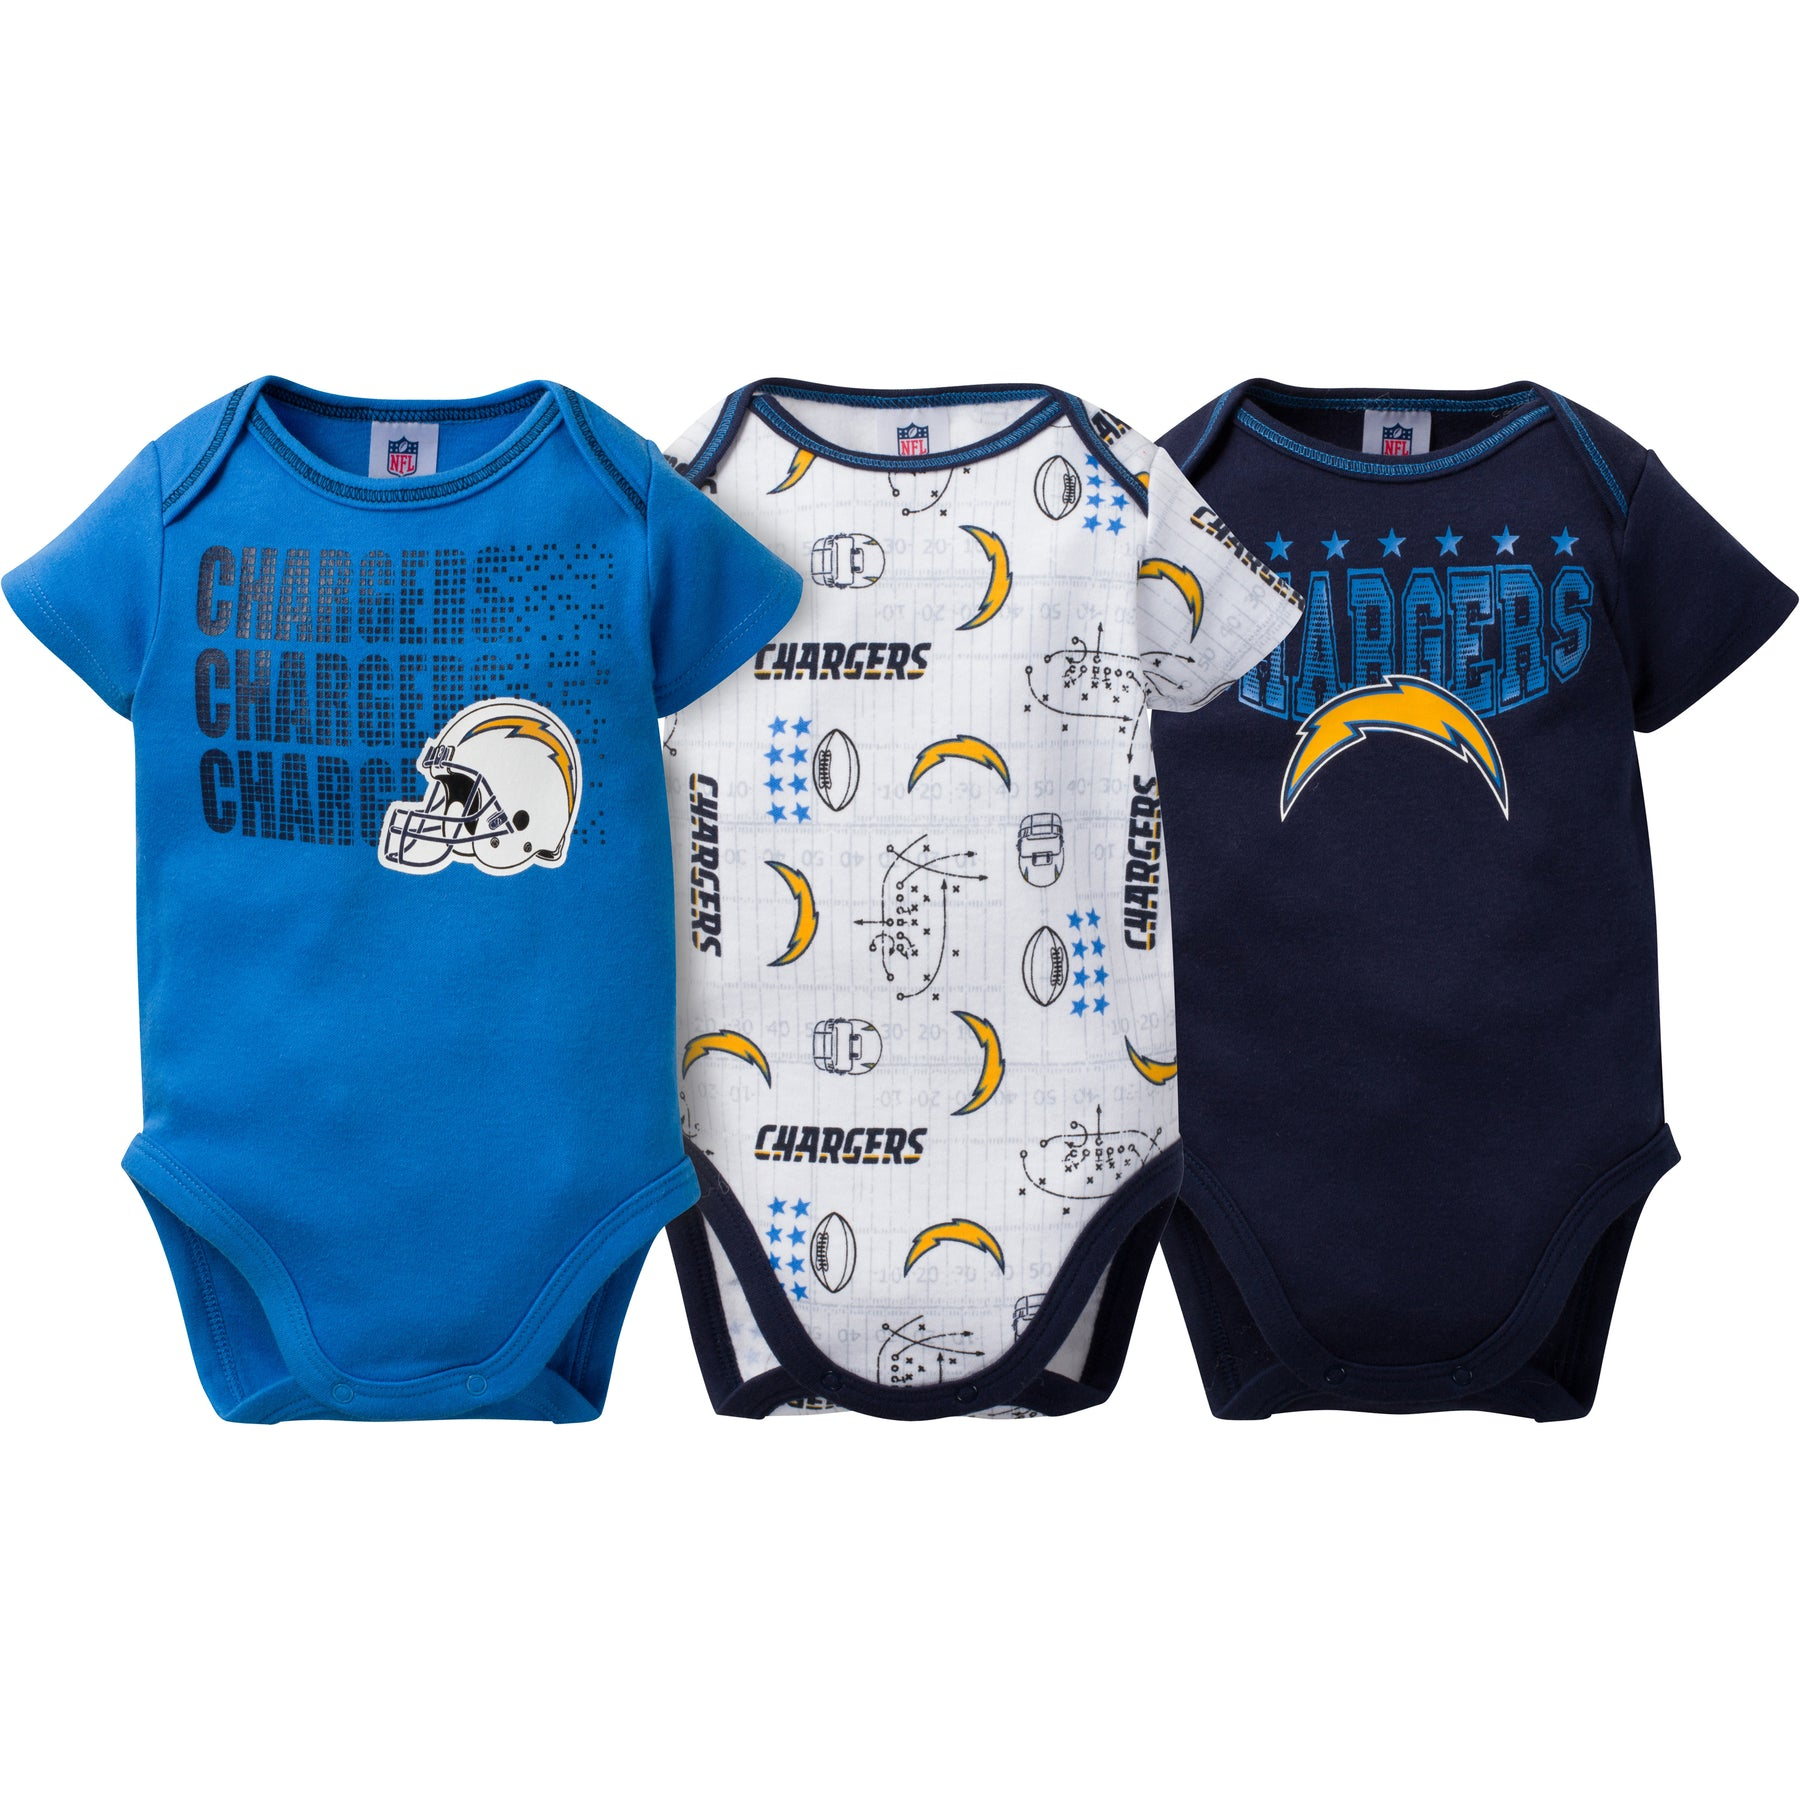 74d07baf9 Chargers Baby 3 Pack Short Sleeve Onesies – babyfans